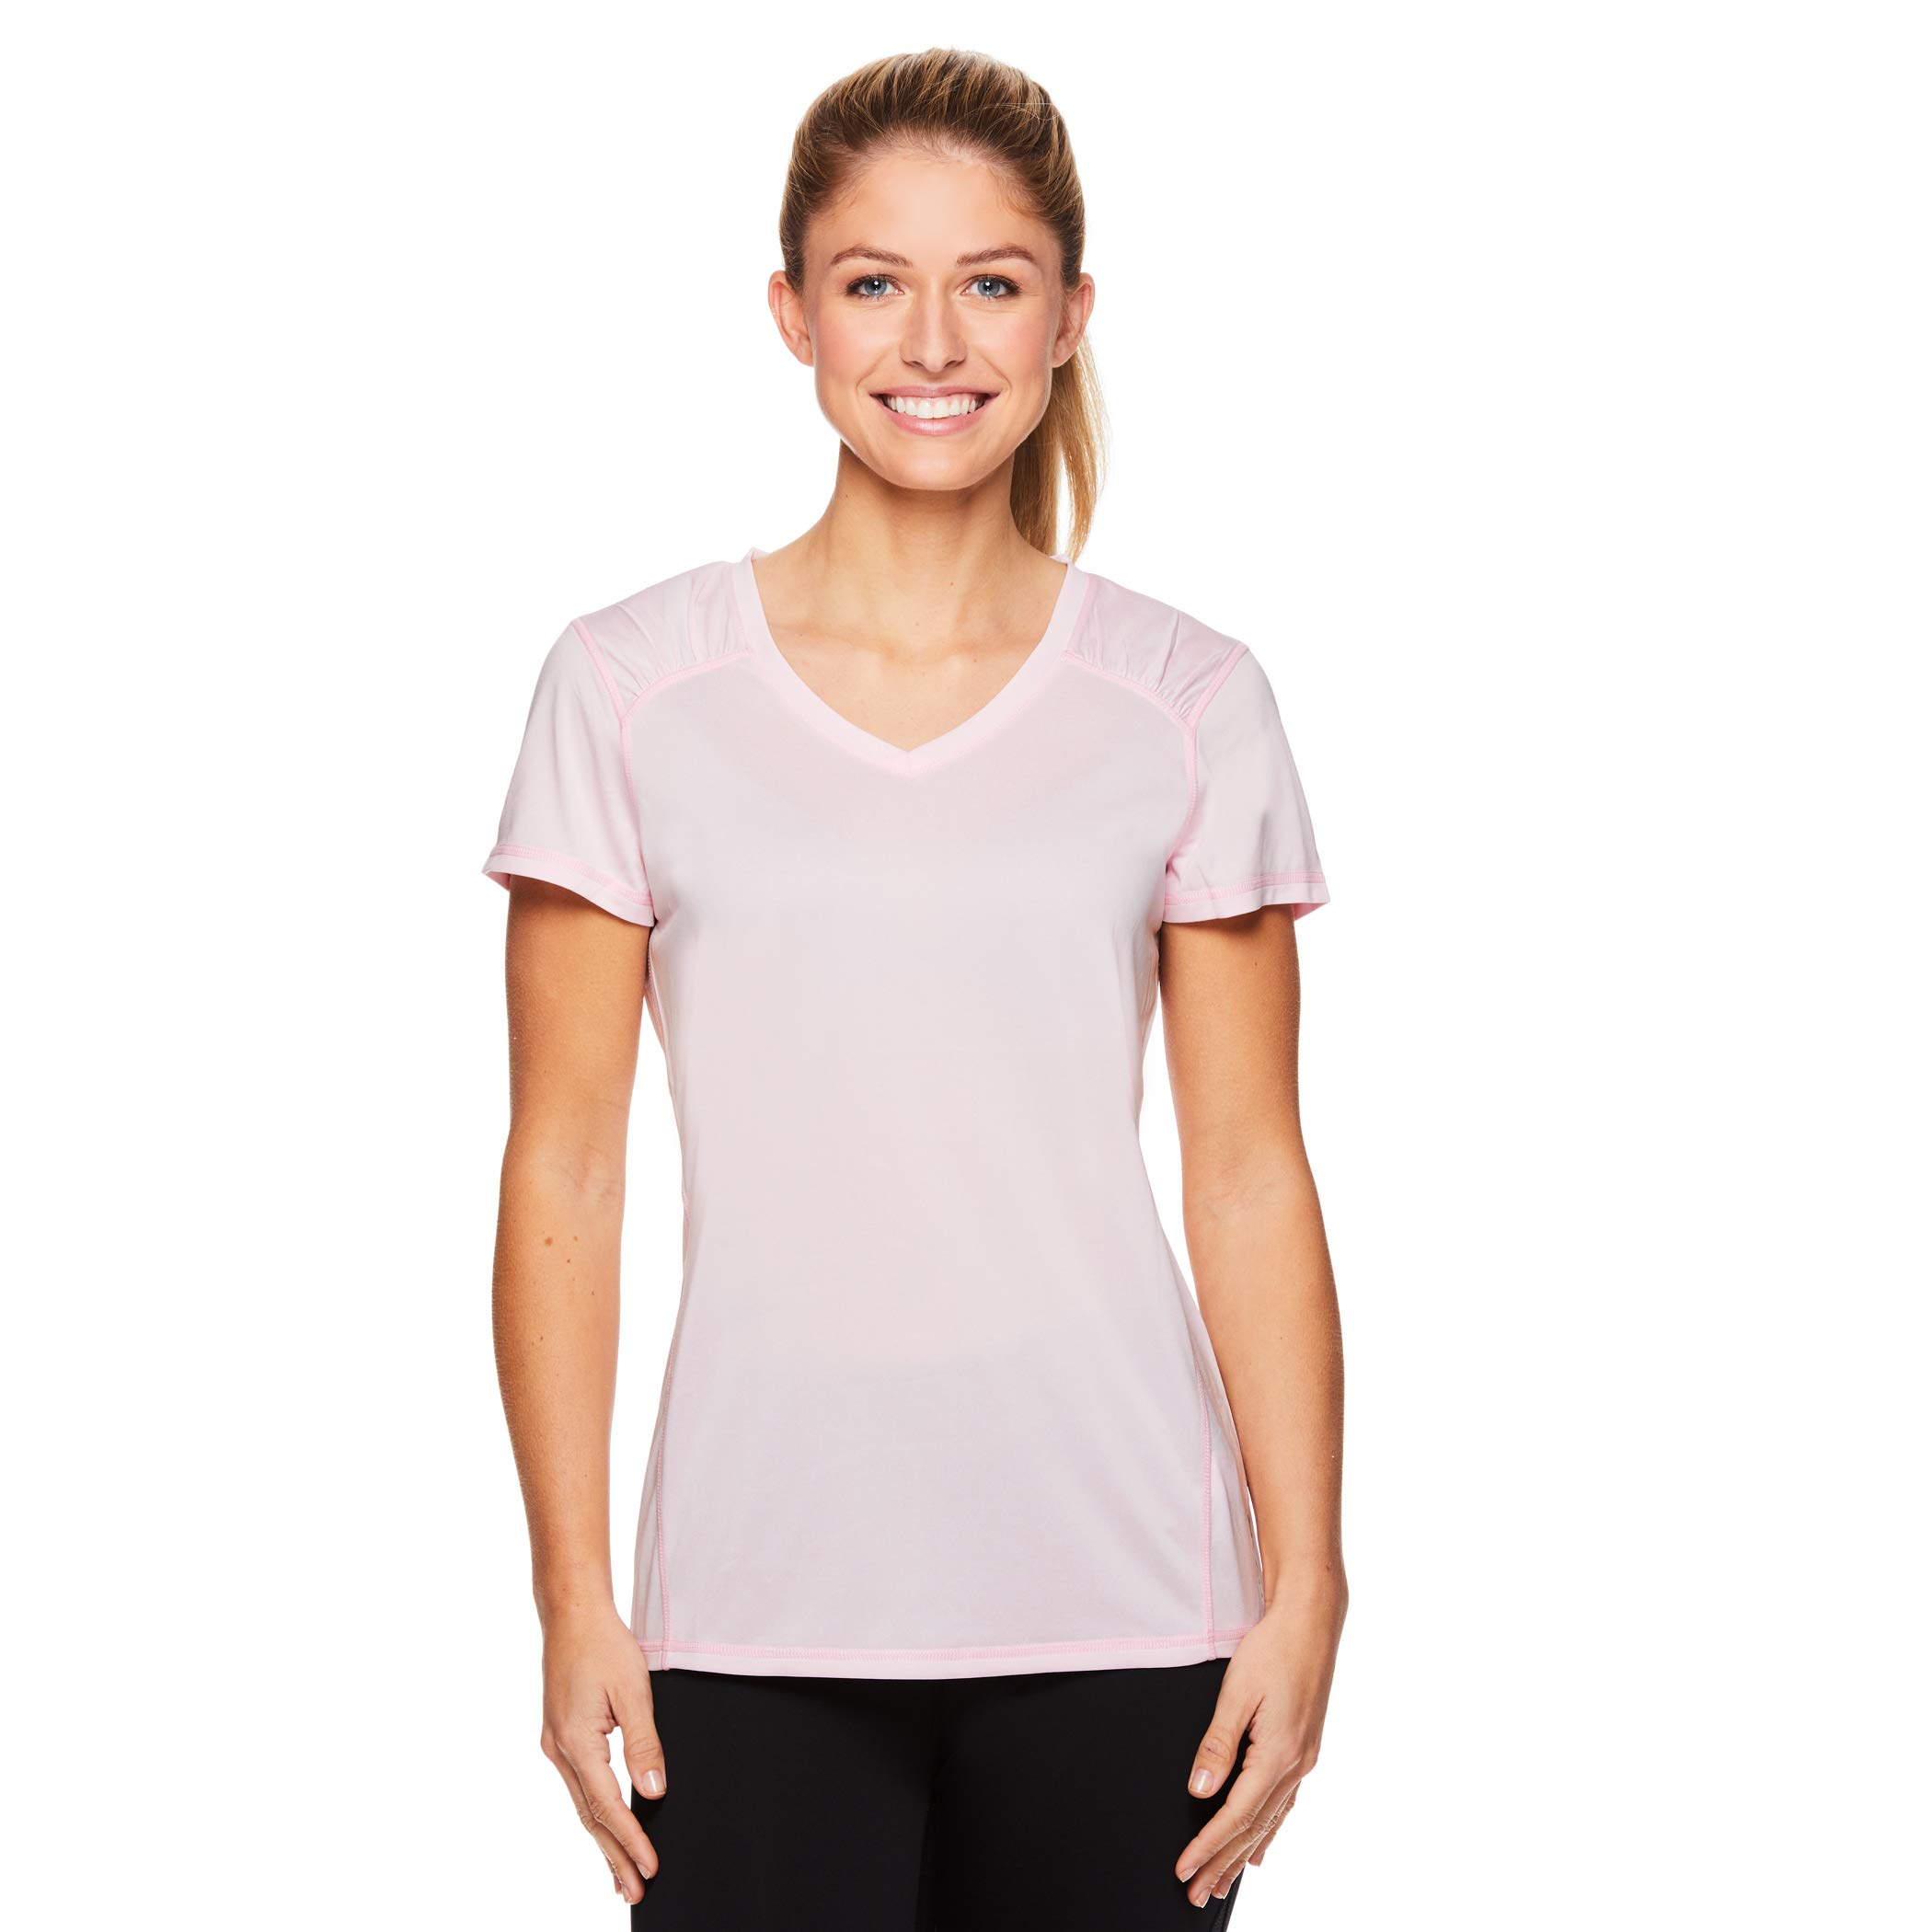 HEAD Women's Perfect Match Short Sleeve Workout T-Shirt - Performance V-Neck Activewear Top - Cherry Blossom Heather, Small